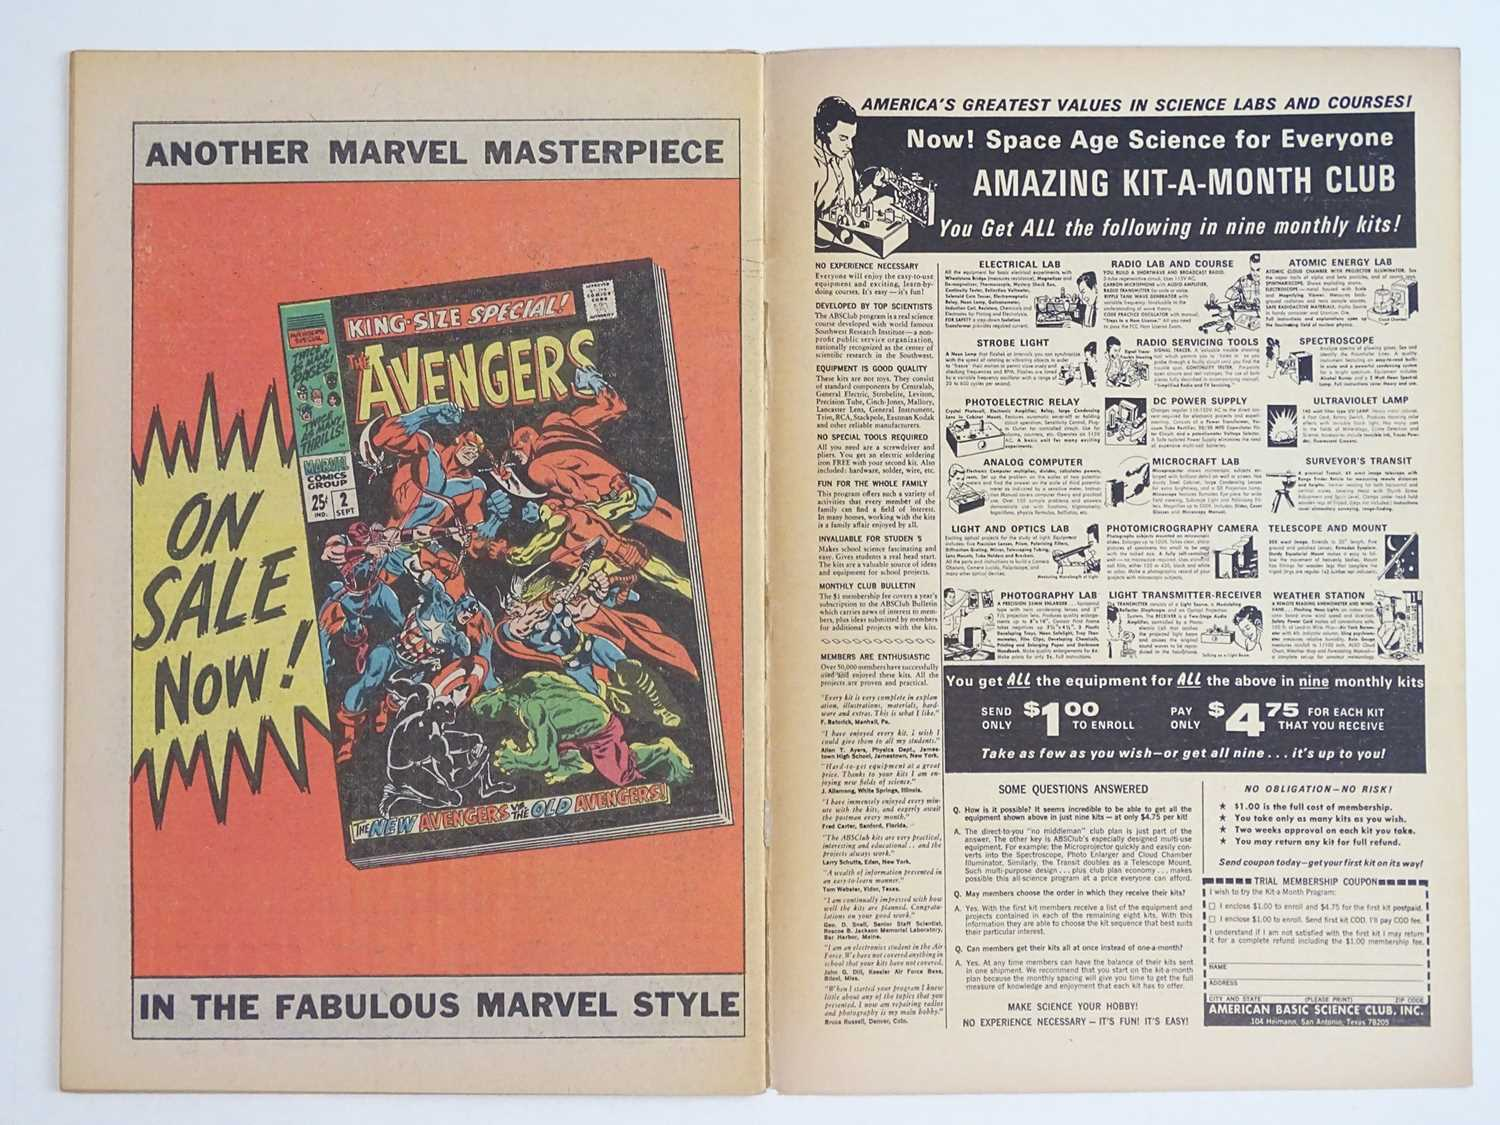 NICK FURY: AGENT OF SHIELD #5 - (1968 - MARVEL - UK Cover Price) - Classic Cover - Jim Steranko - Image 4 of 9